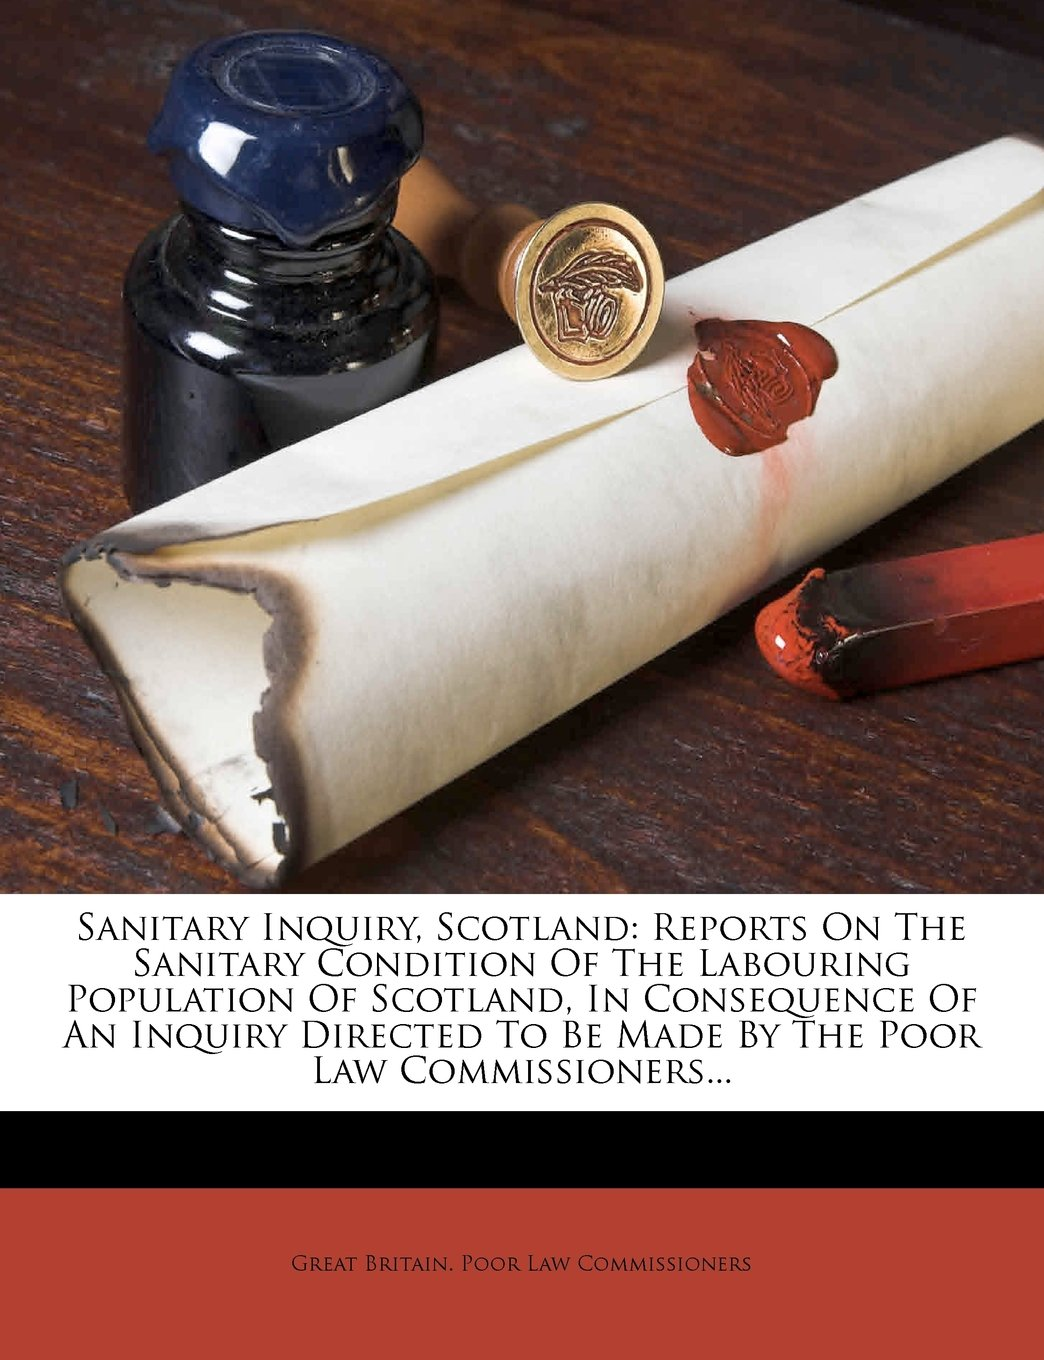 Download Sanitary Inquiry, Scotland: Reports On The Sanitary Condition Of The Labouring Population Of Scotland, In Consequence Of An Inquiry Directed To Be Made By The Poor Law Commissioners... PDF